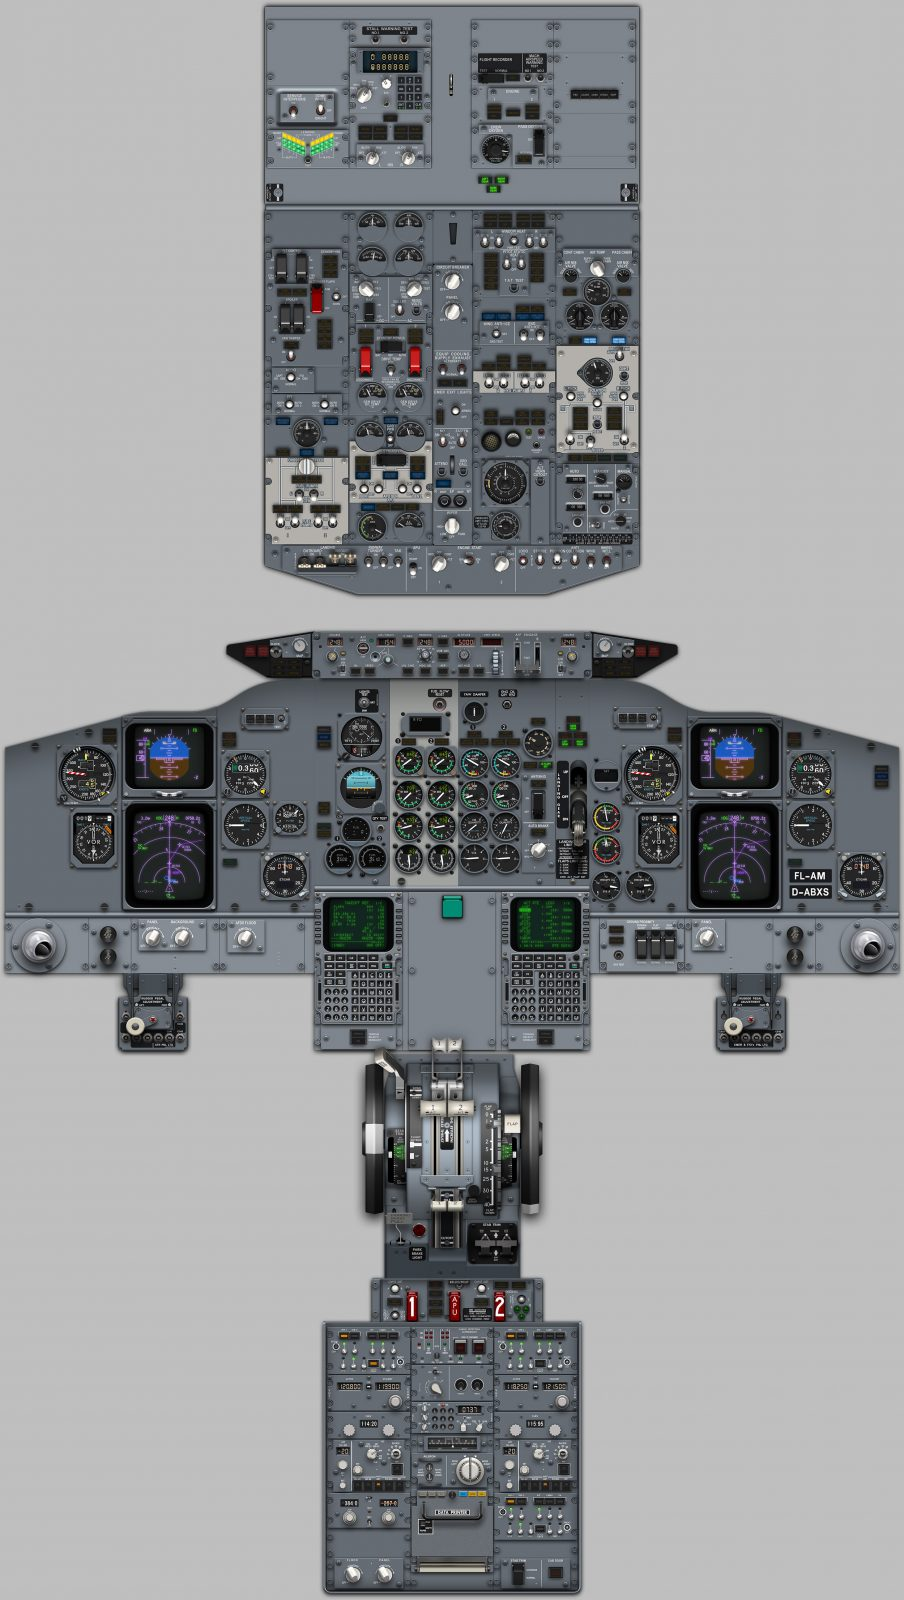 737 Simulator Cockpit Diagrams